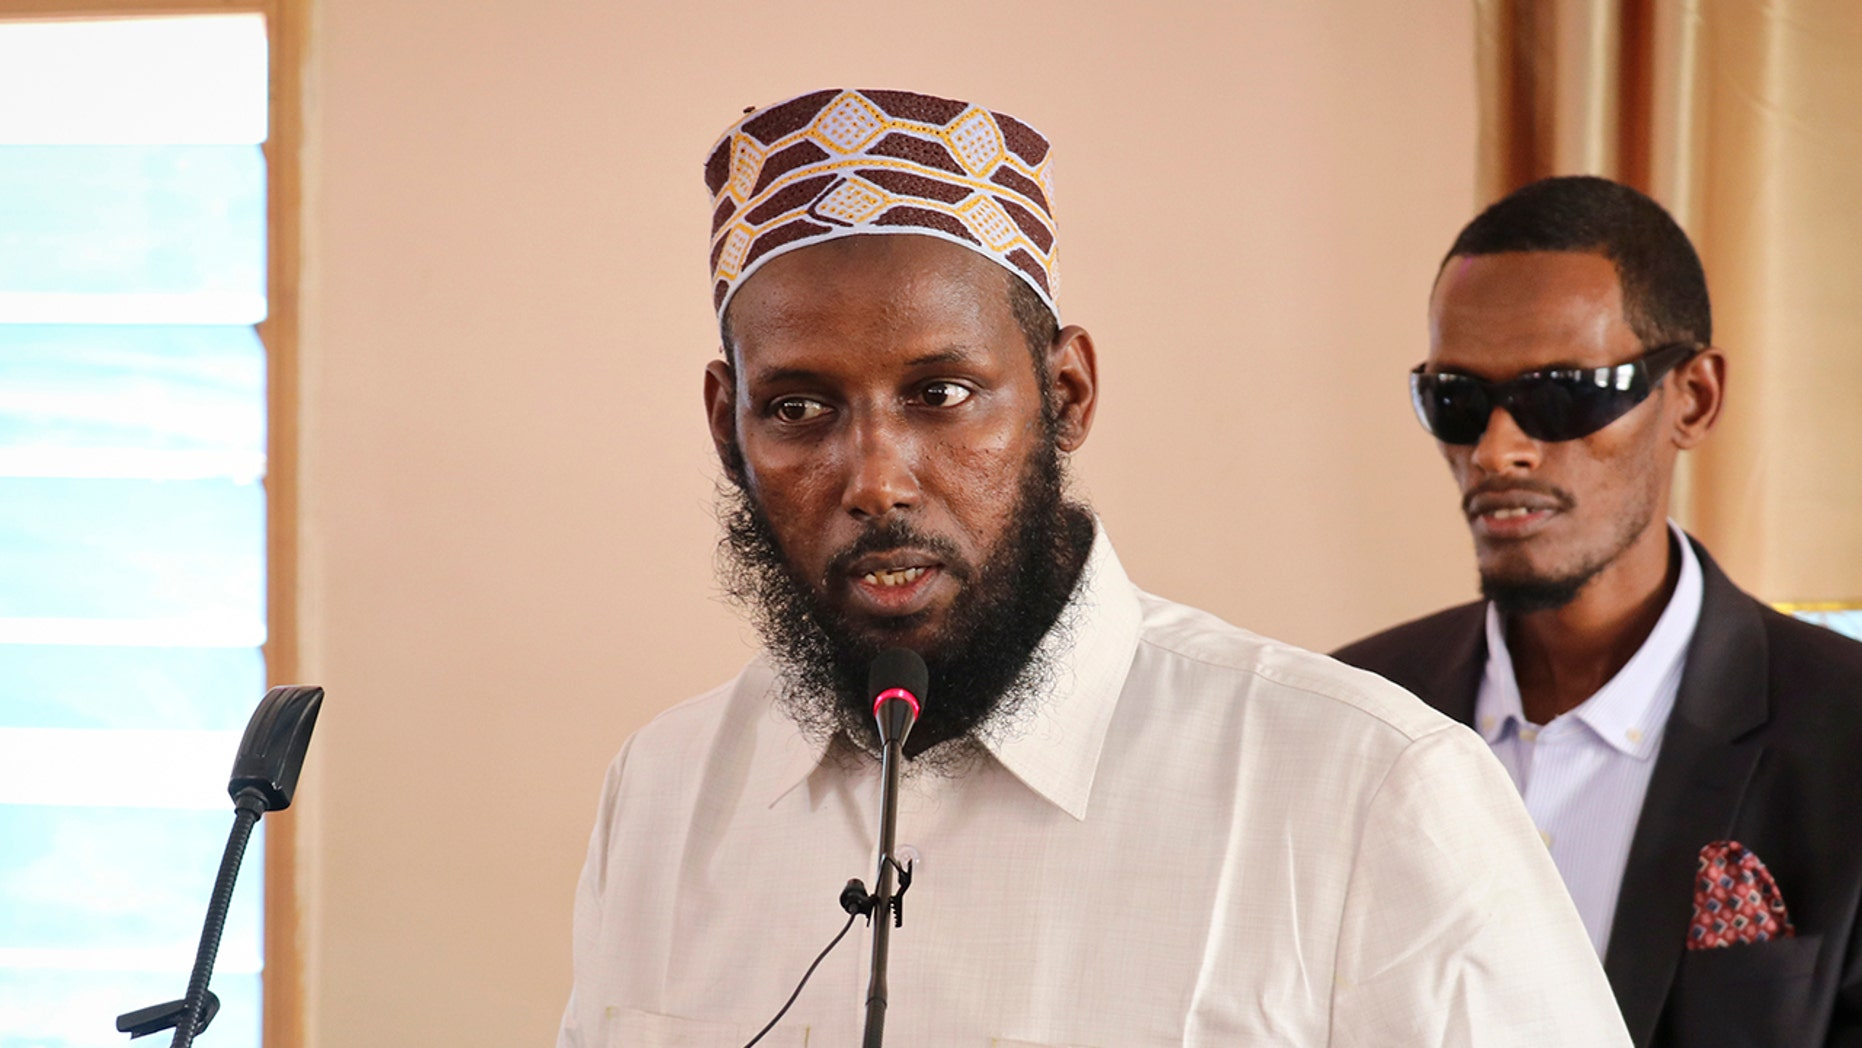 Former Somalia extremist now running for office is arrested